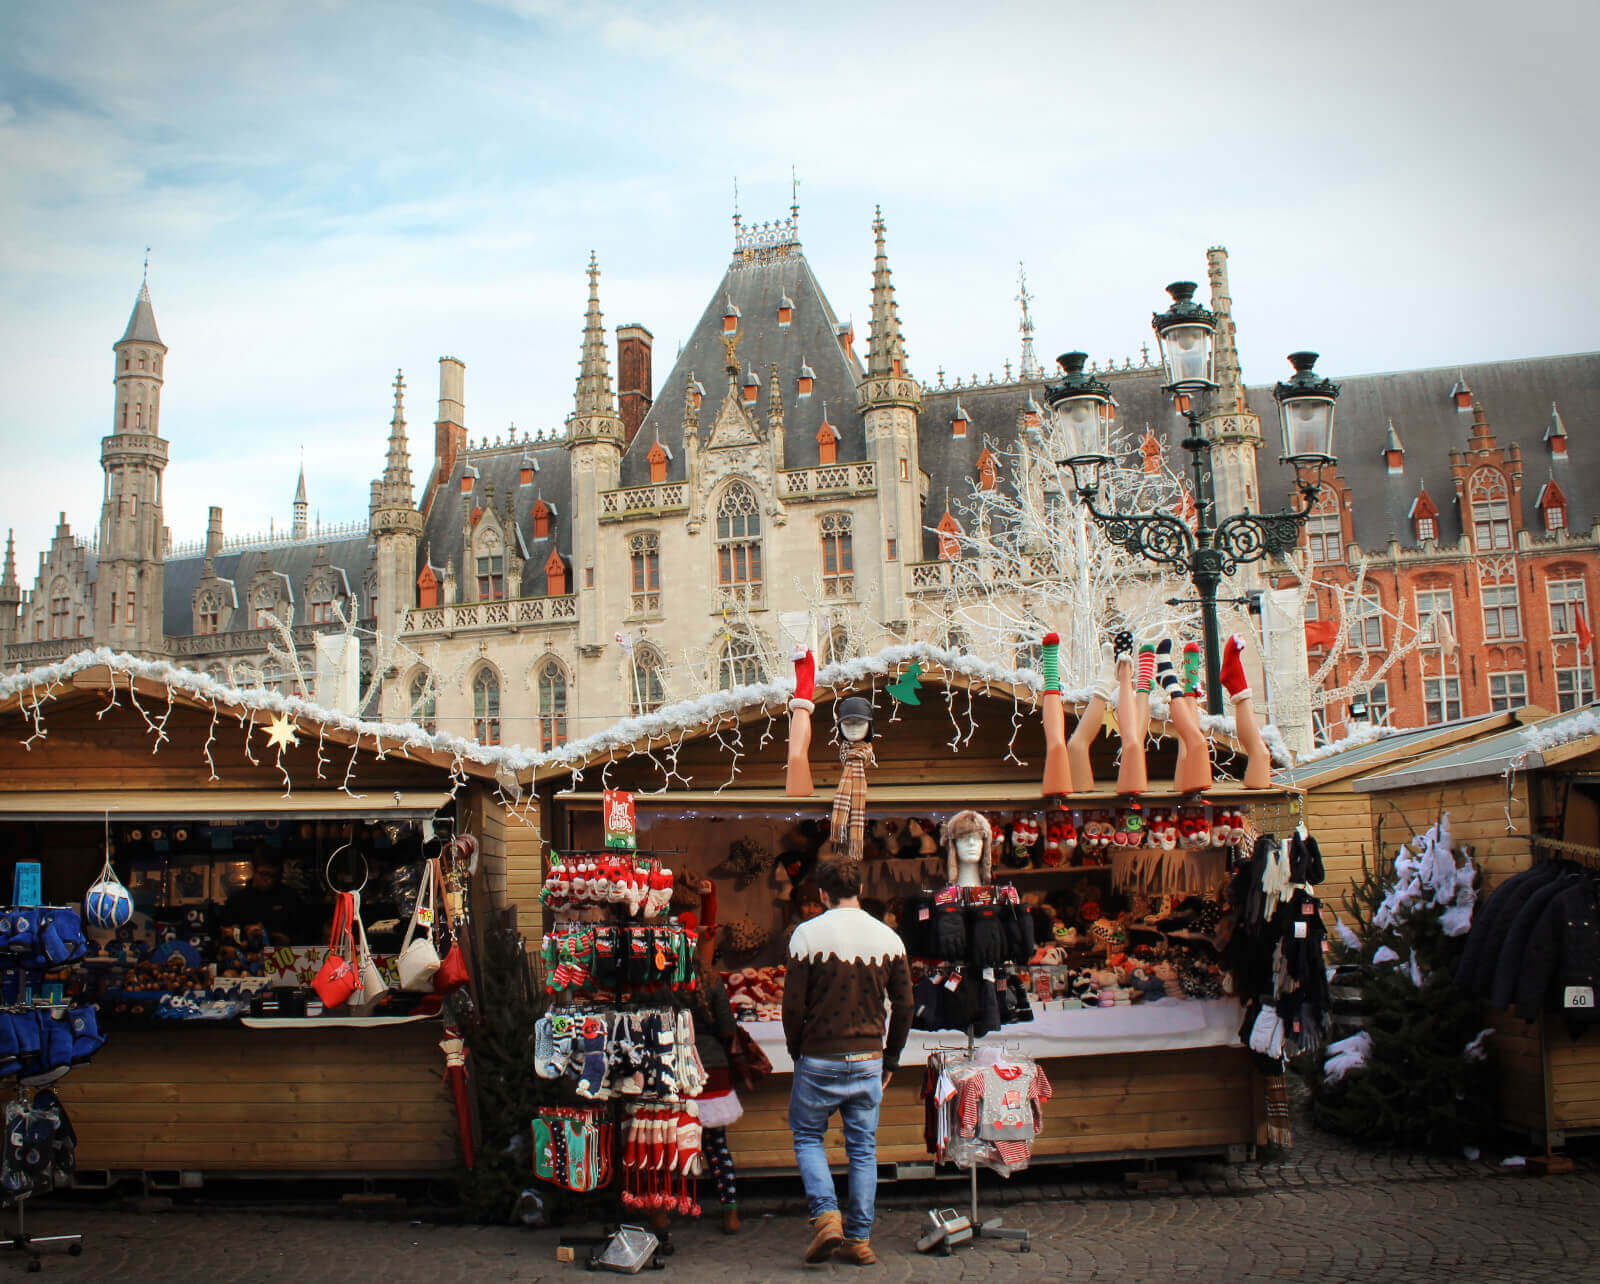 The adorable Christmas Market in Brugges, Belgium in winter.